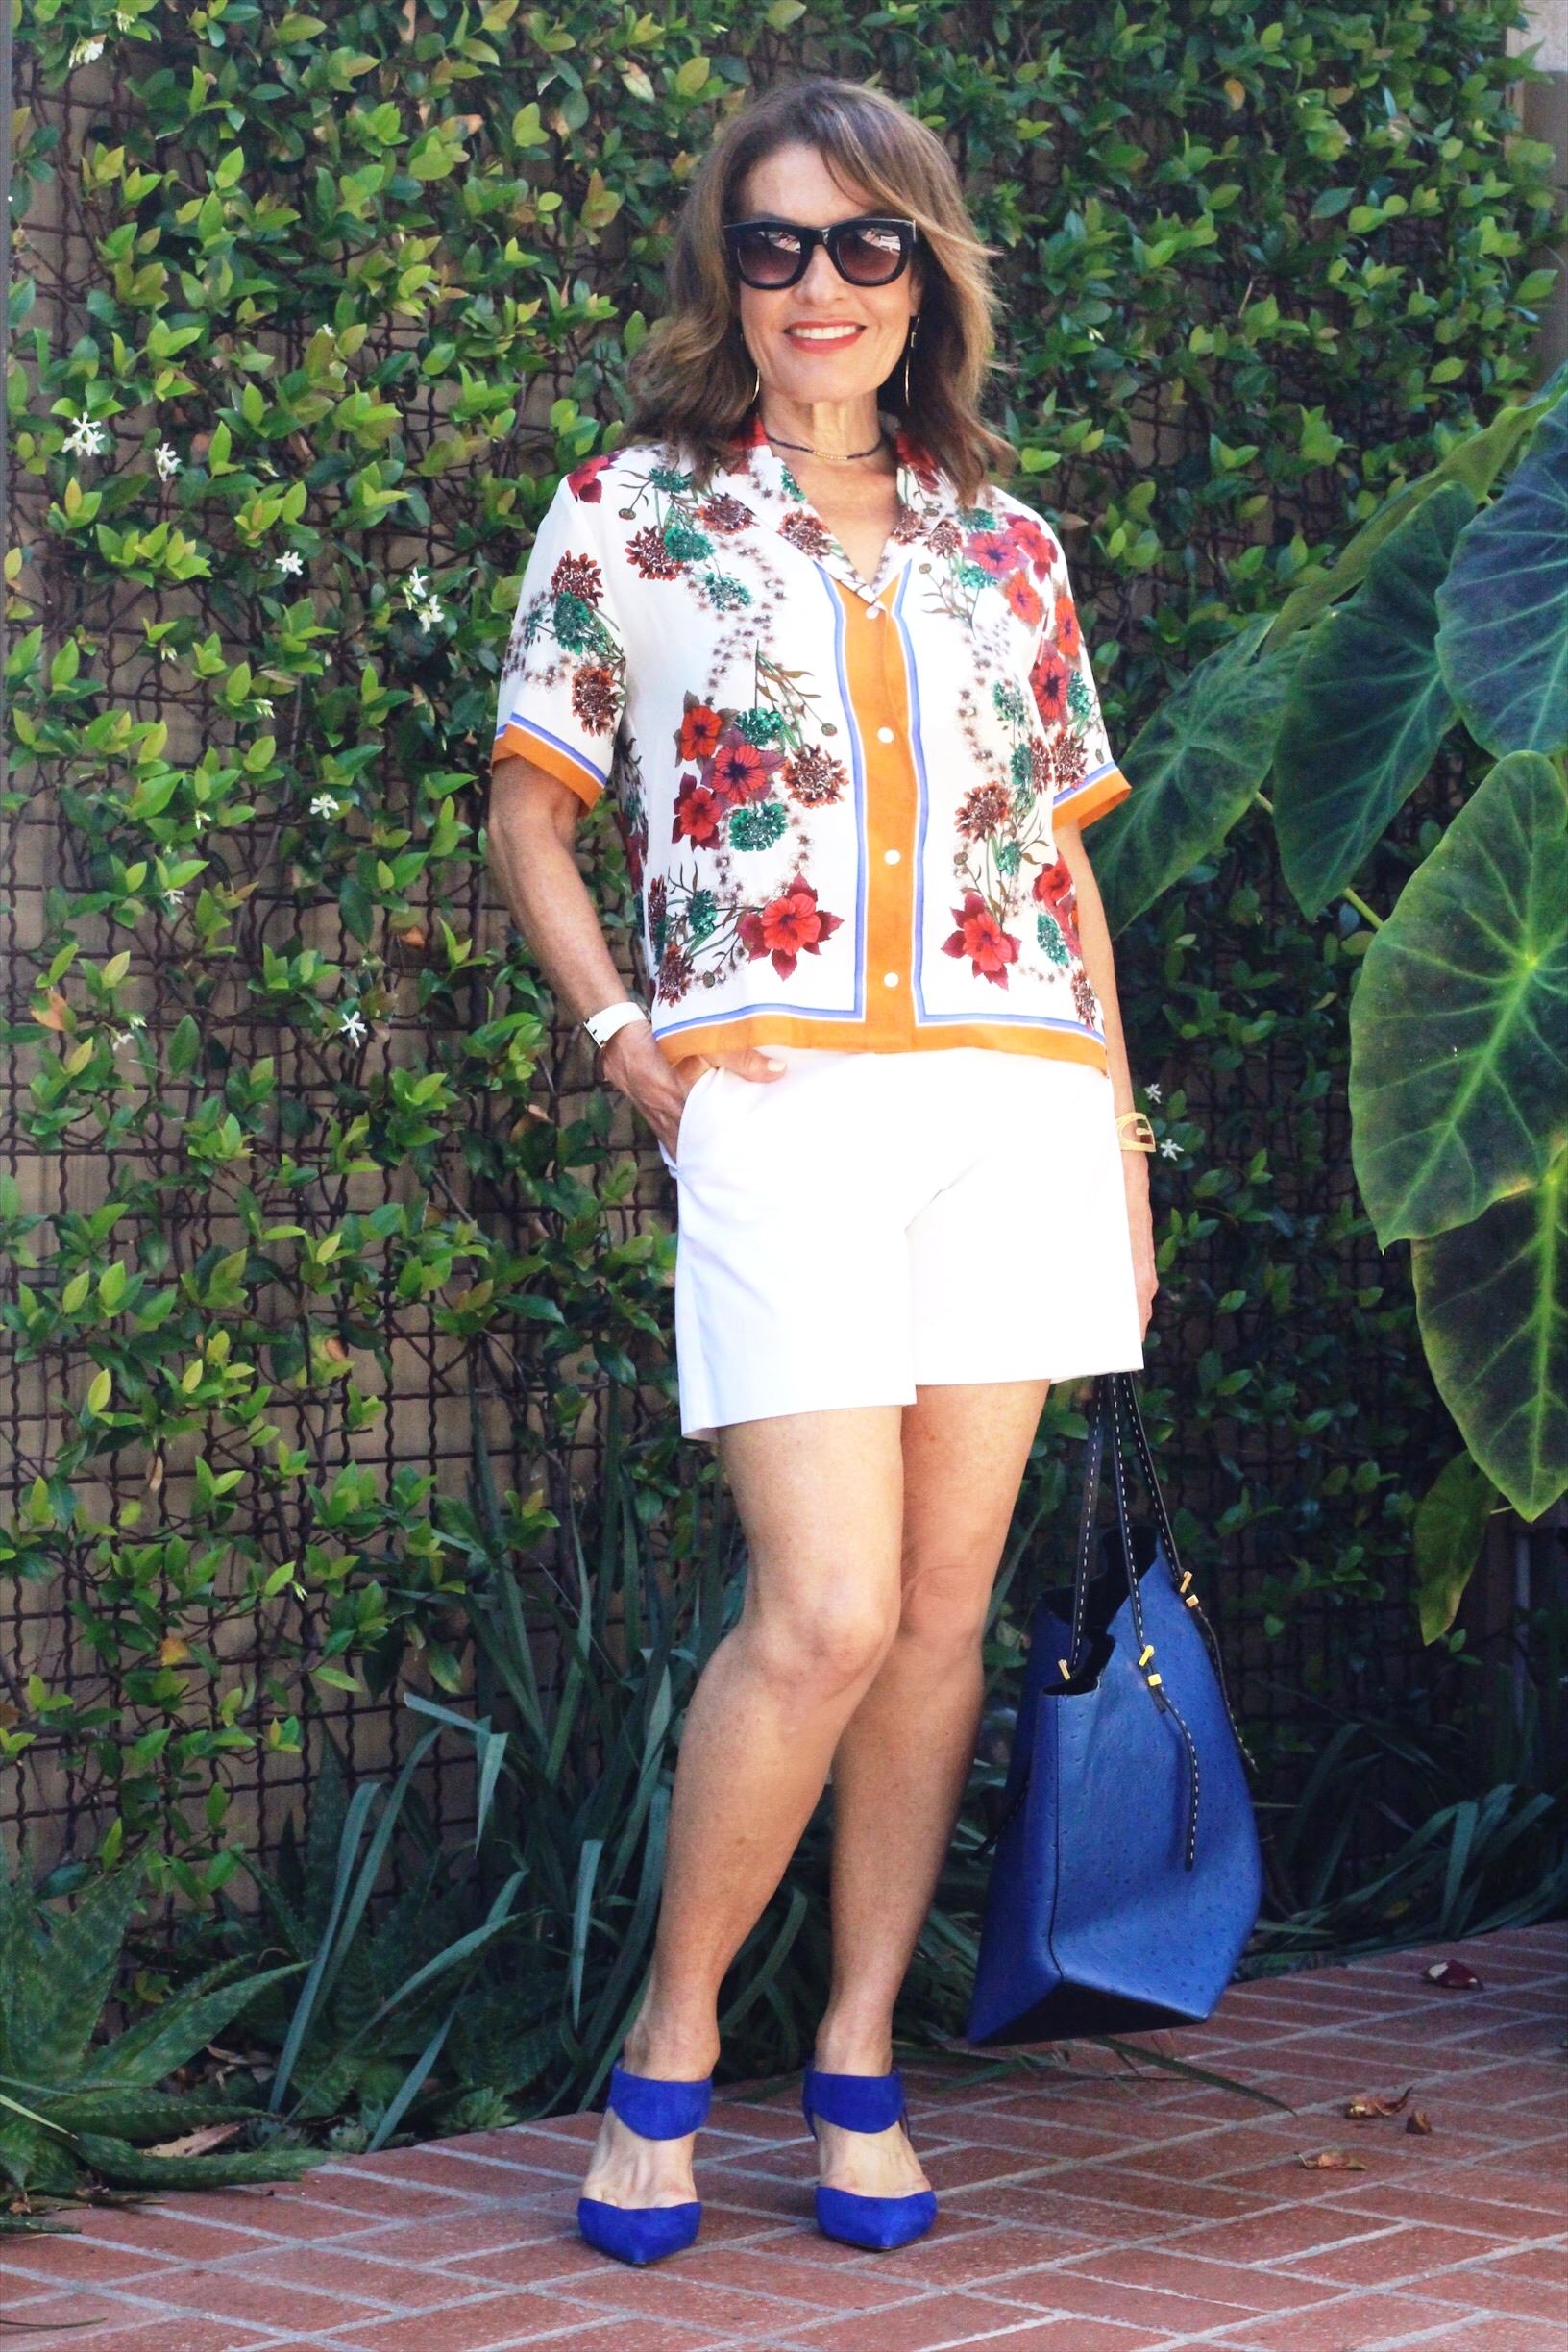 Sandro blouse on sale here   , Worth New York Shorts    similar and on sale here   ,  Nicholas Kirkwood shoes, Michael Kors tote, Tous watch, Under A Fig Tree bracelet, Elizabeth and James Earrings, Robin Terman choker, Celine sunnies.